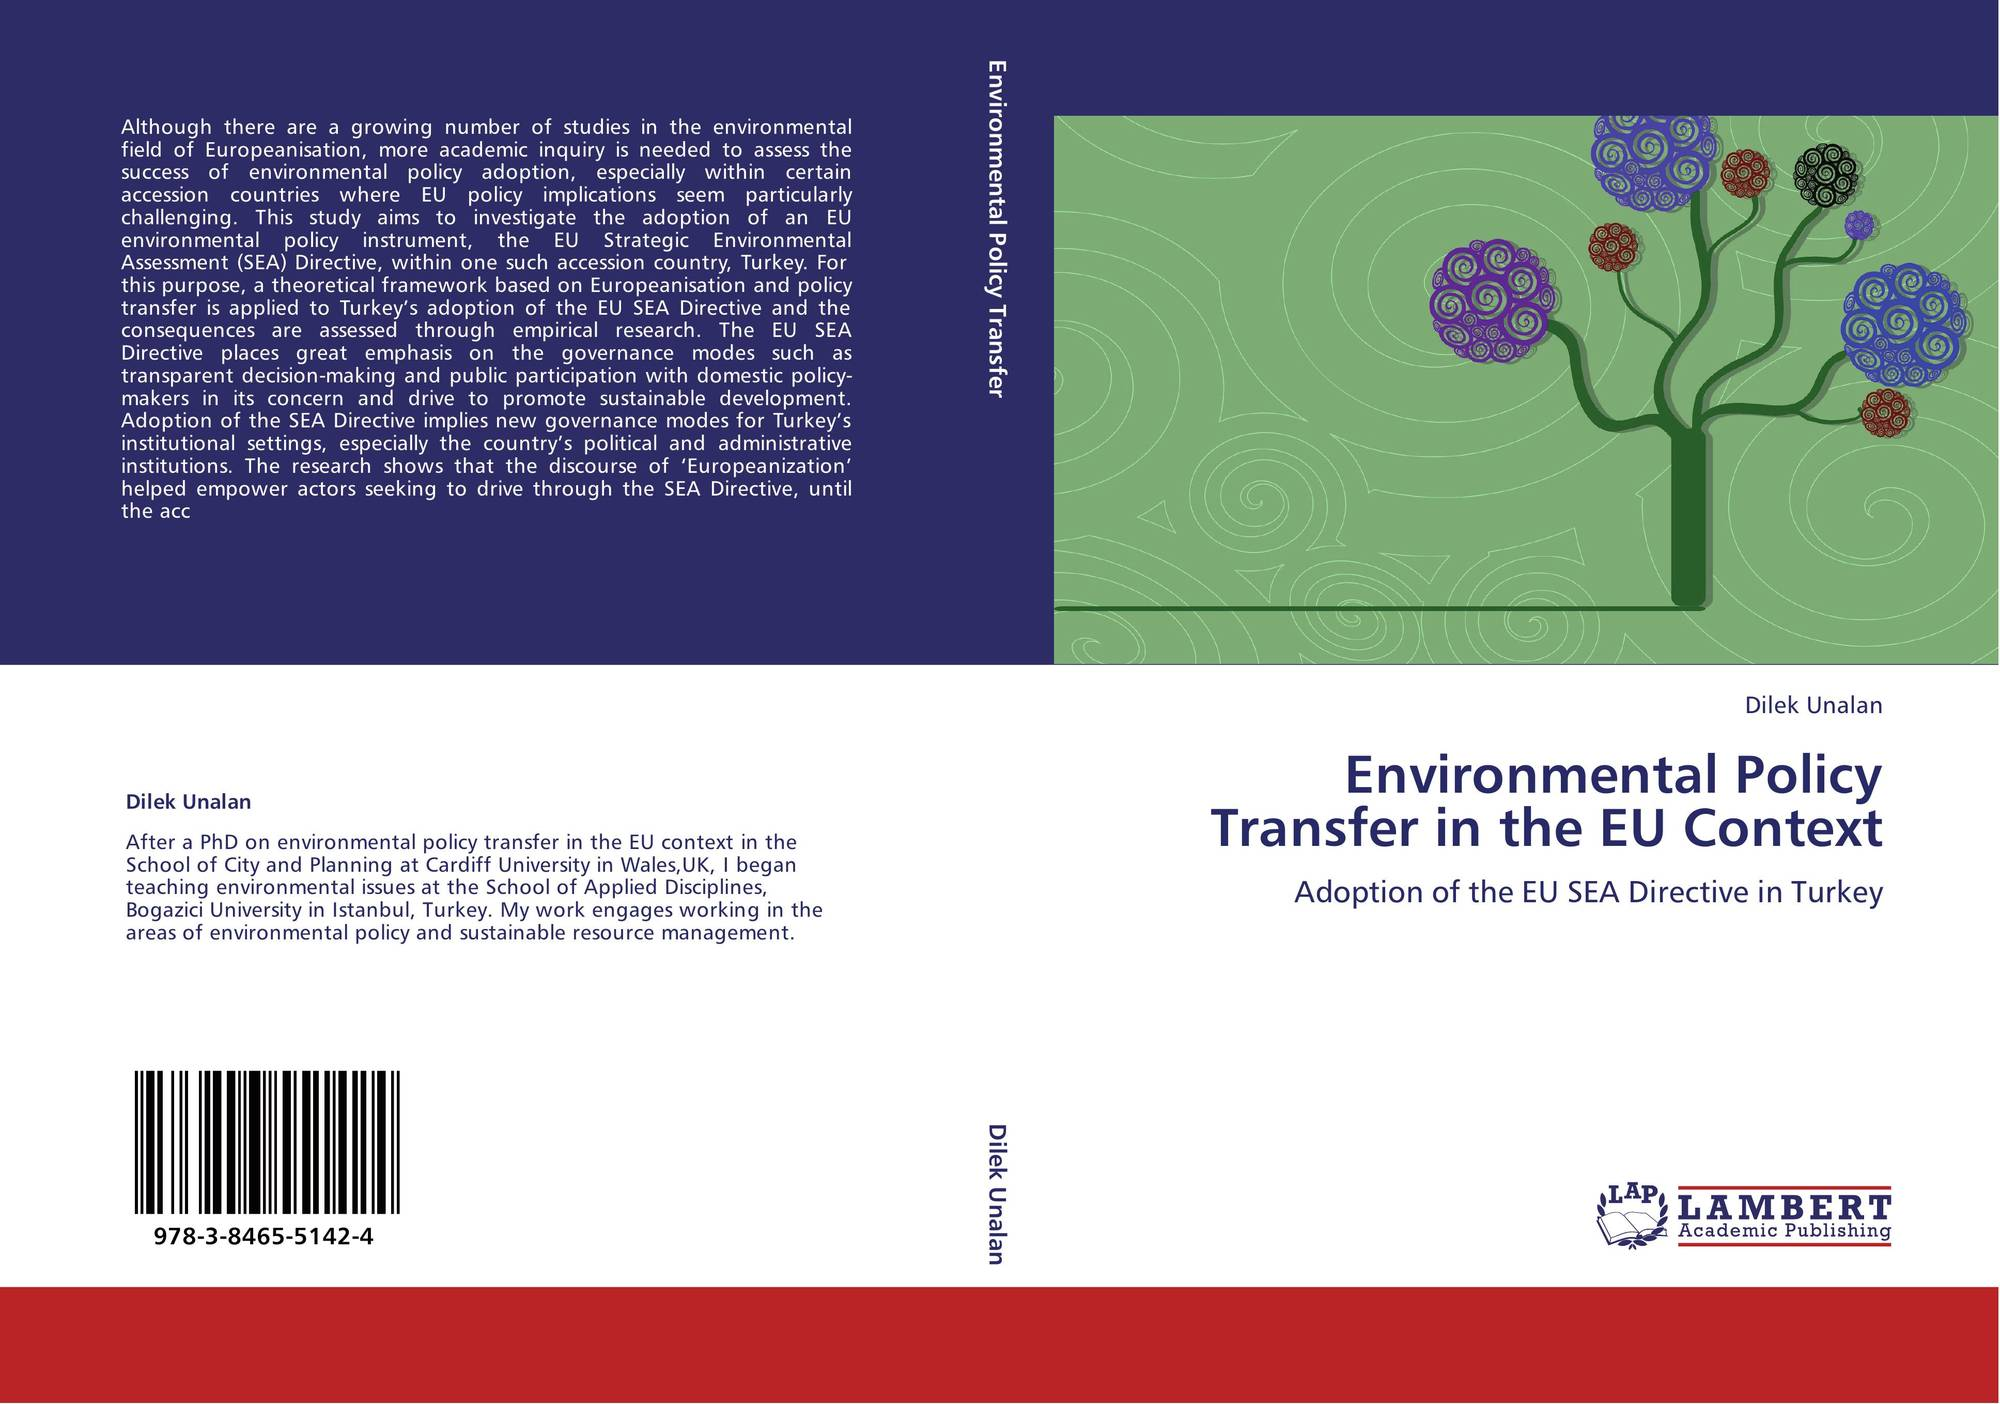 eu environmental policy and turkey essay Open document below is an essay on eu-turkey relations from anti essays, your source for research papers, essays, and term paper examples.